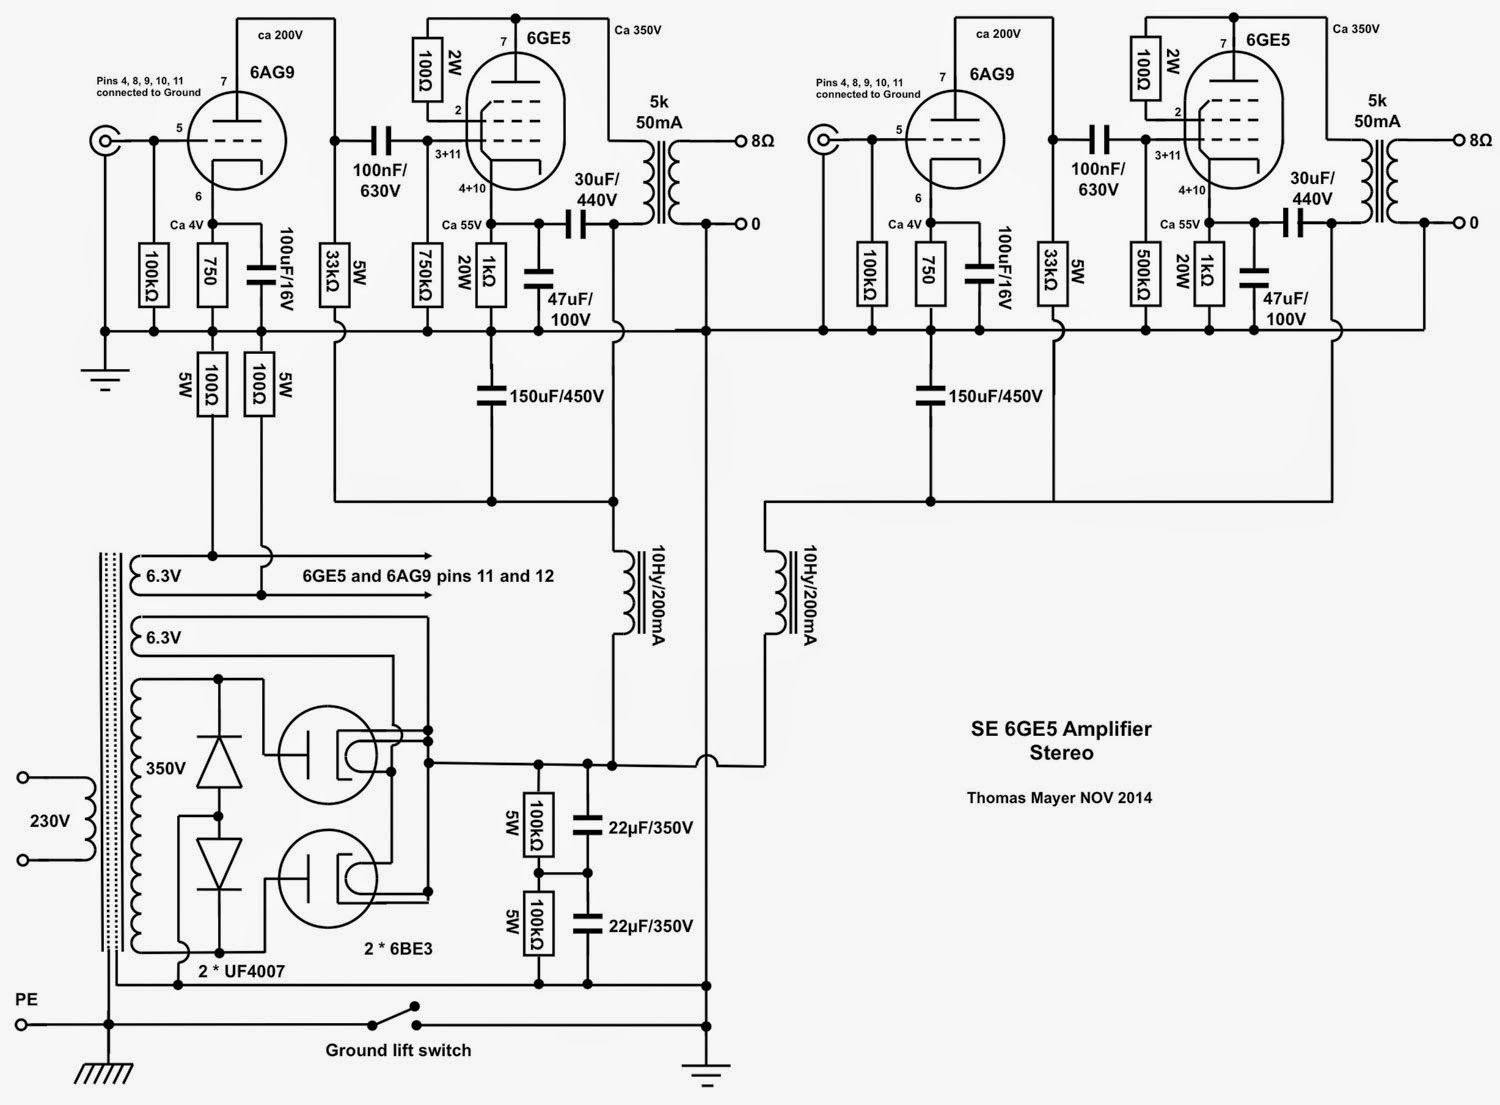 6ge5 Stereo Amplifier Part 1 Circuit